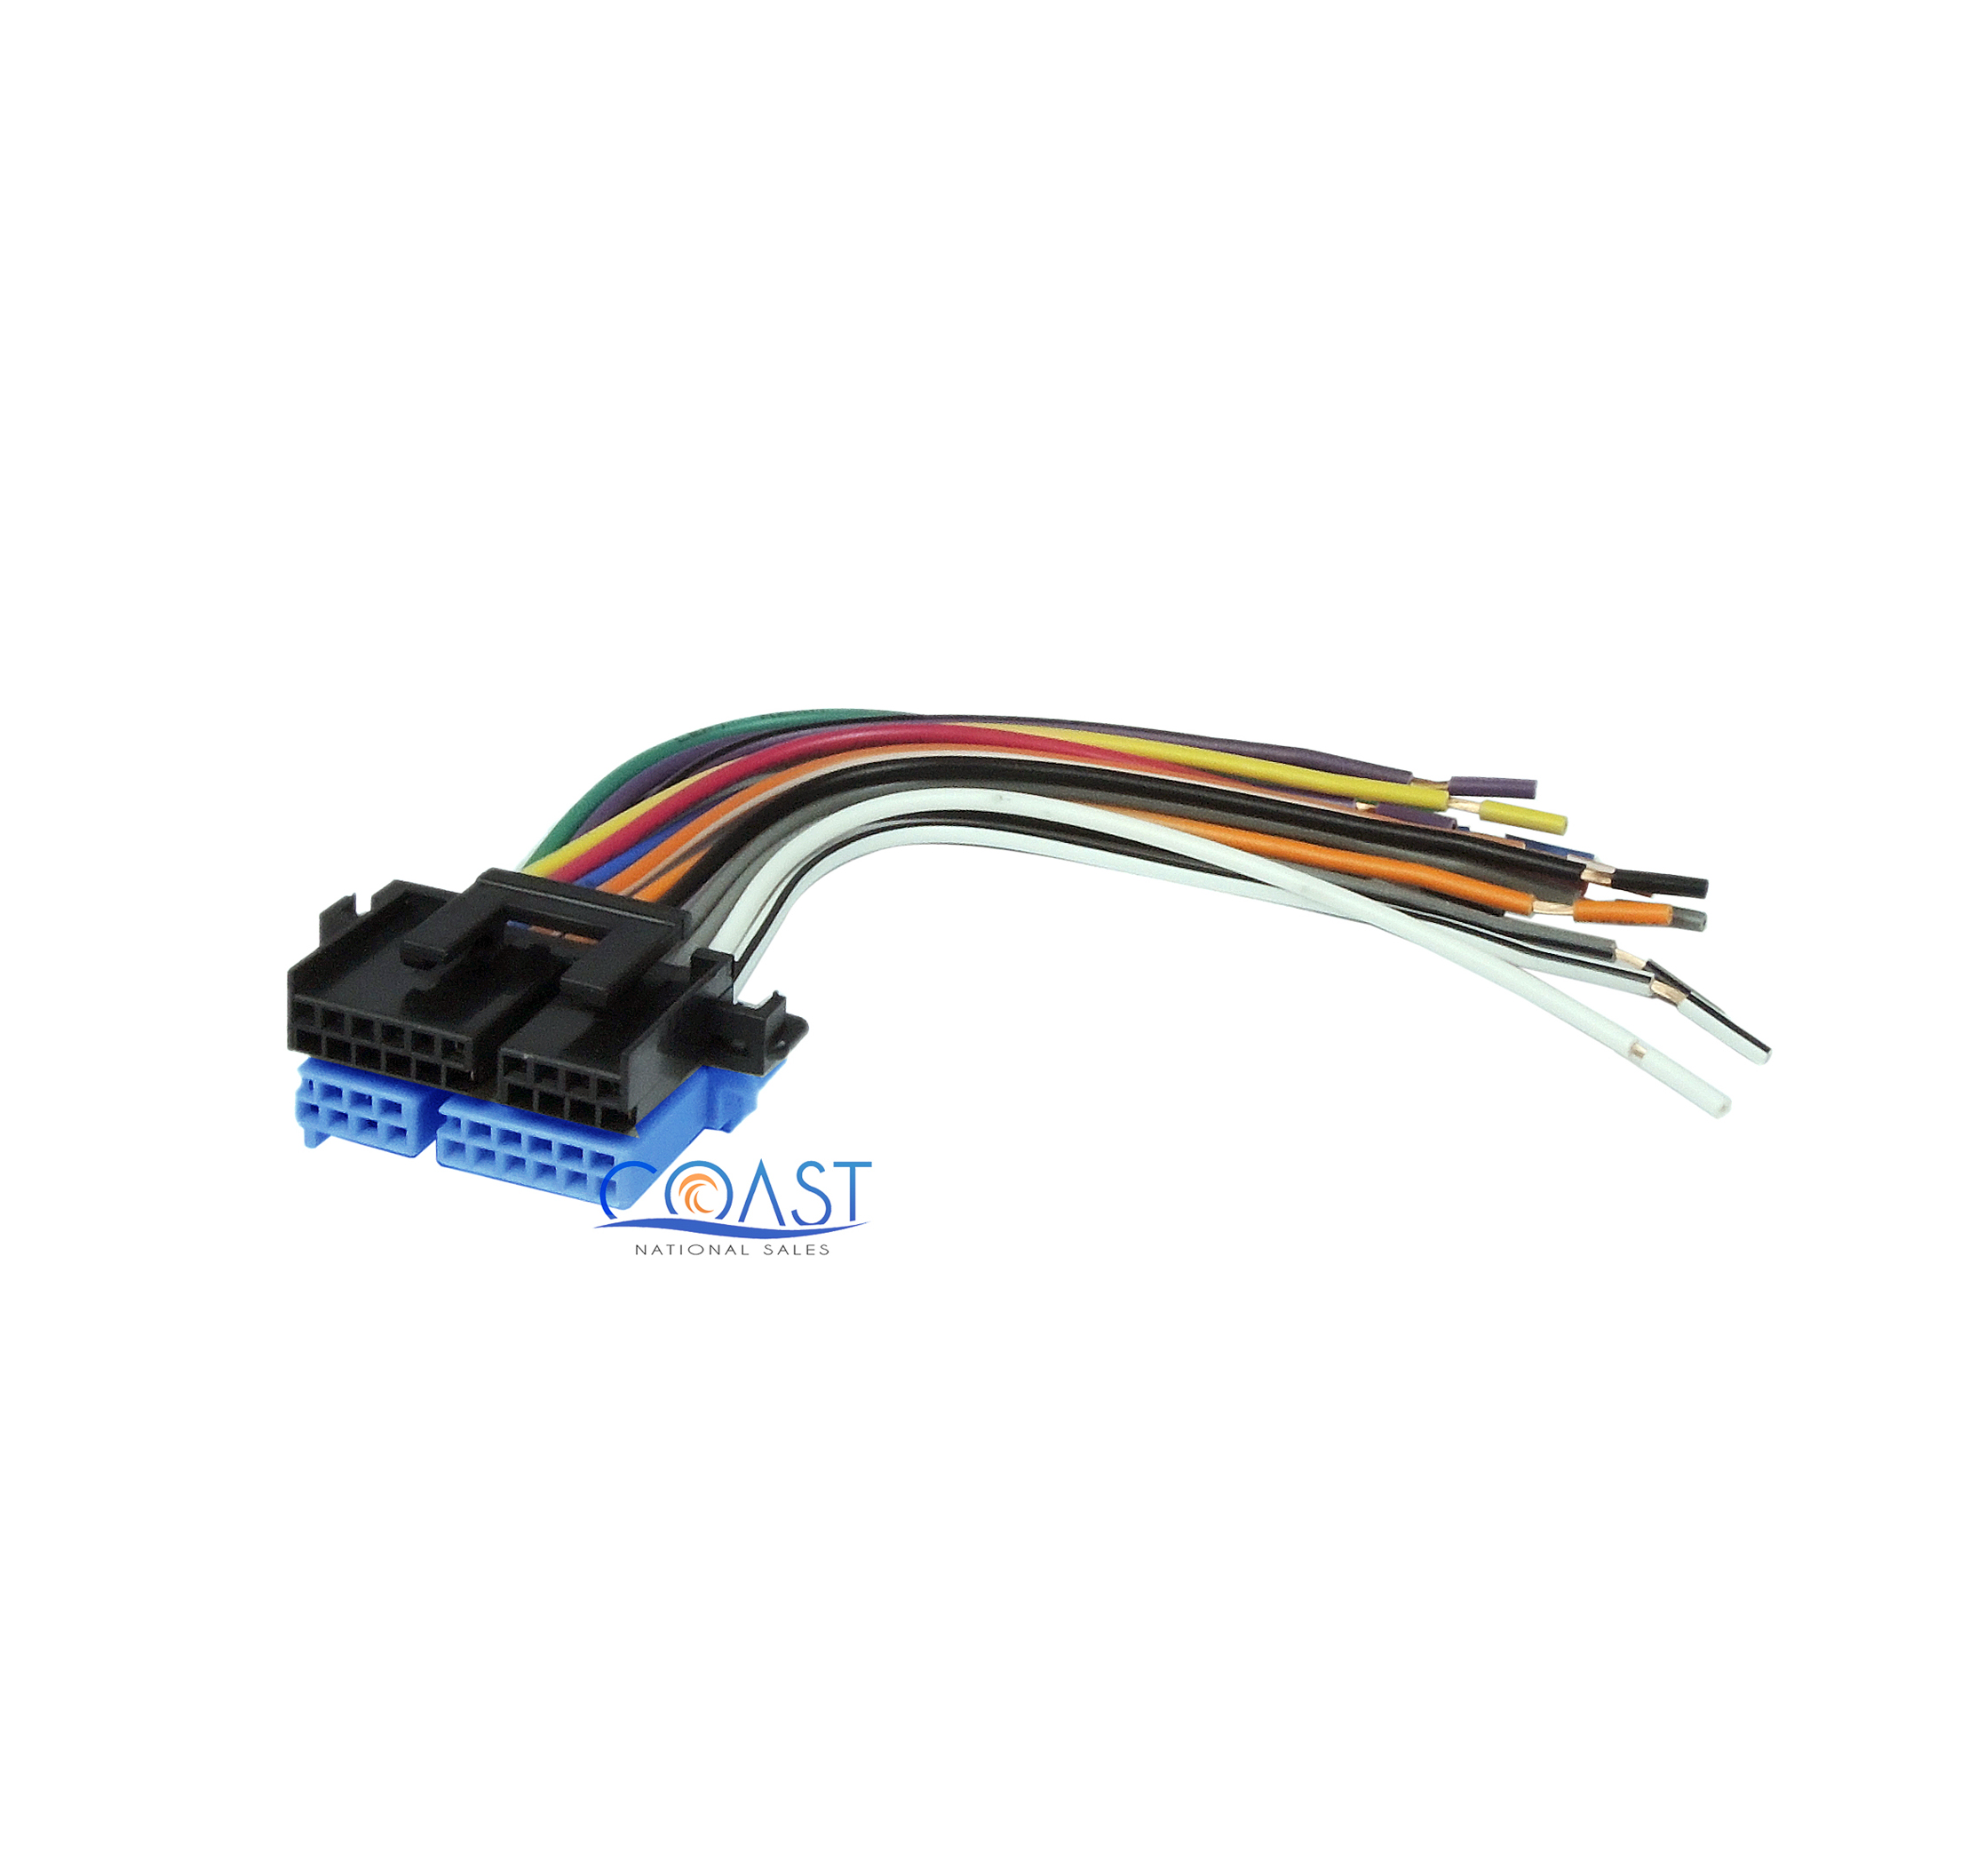 GM 1343M wiring diagram for 2004 chevy silverado 2500 the wiring diagram 2004 chevy silverado stereo wiring harness at n-0.co